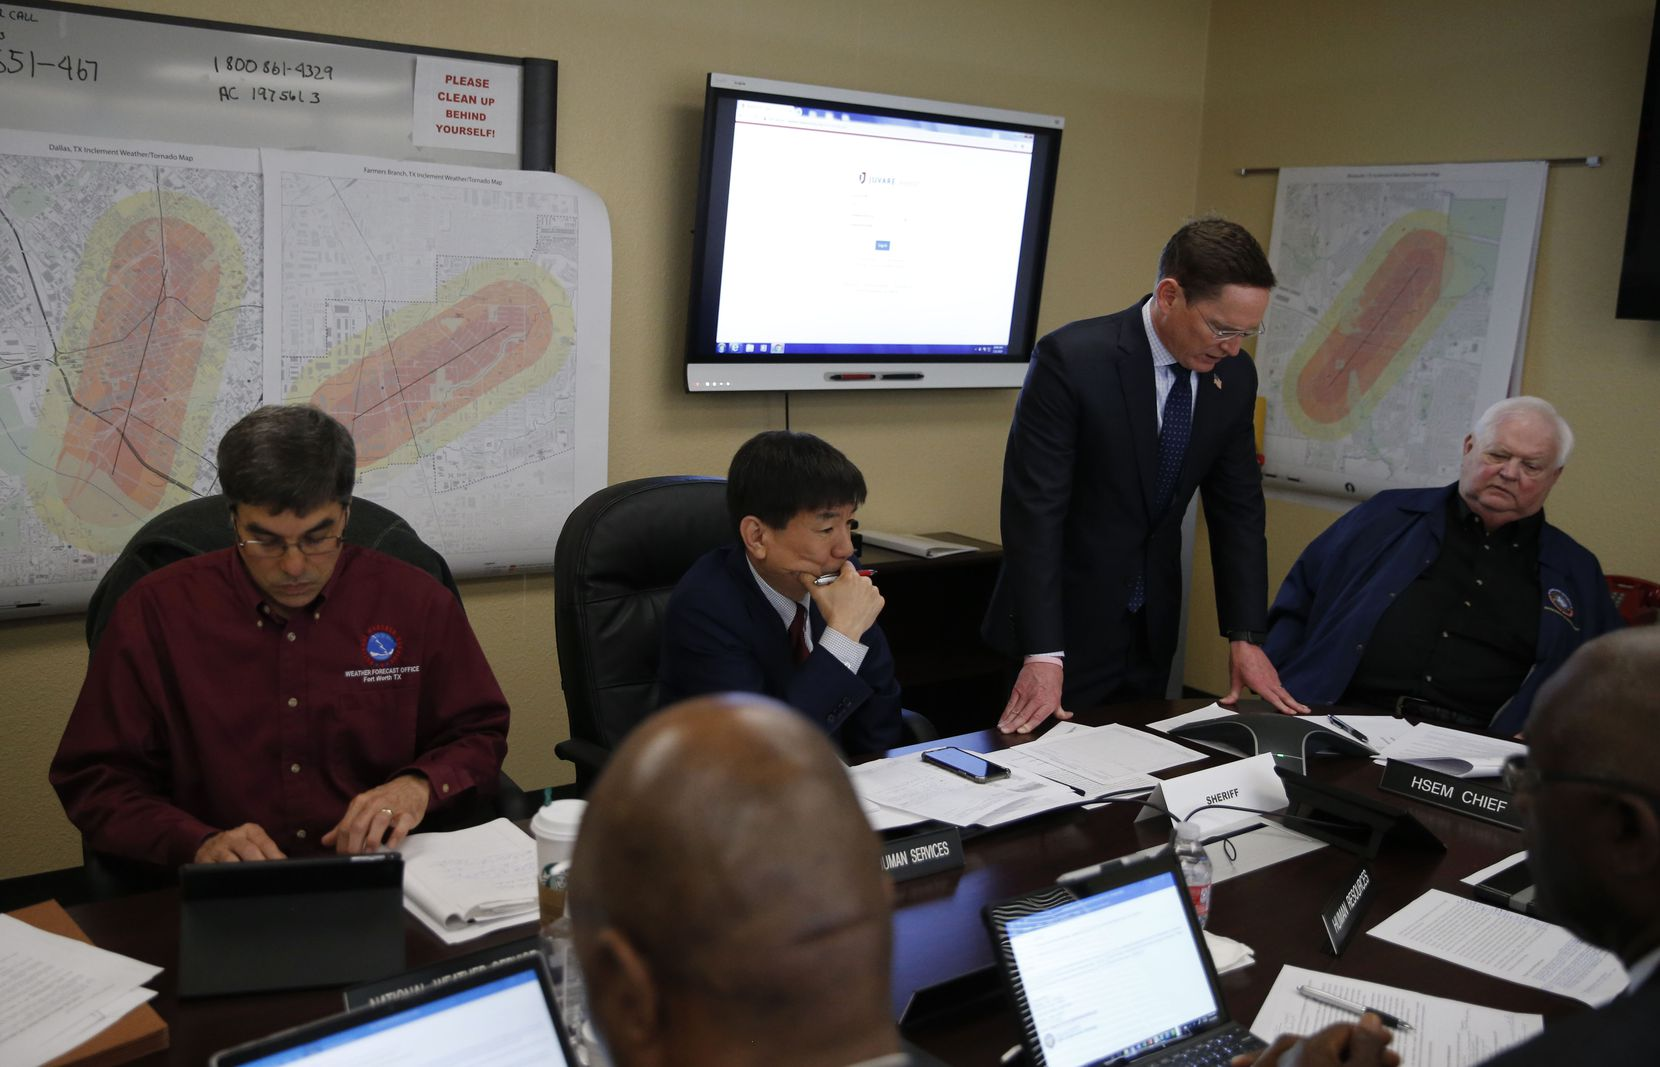 Dallas County Judge Clay Jenkins (standing) talks on a conference call in the policy room during a simulated EF-4 tornado strike at the Dallas County Emergency Operations Center in Dallas on Thursday, March 21, 2019. This was the largest severe weather exercise ever conducted in the D-FW area.